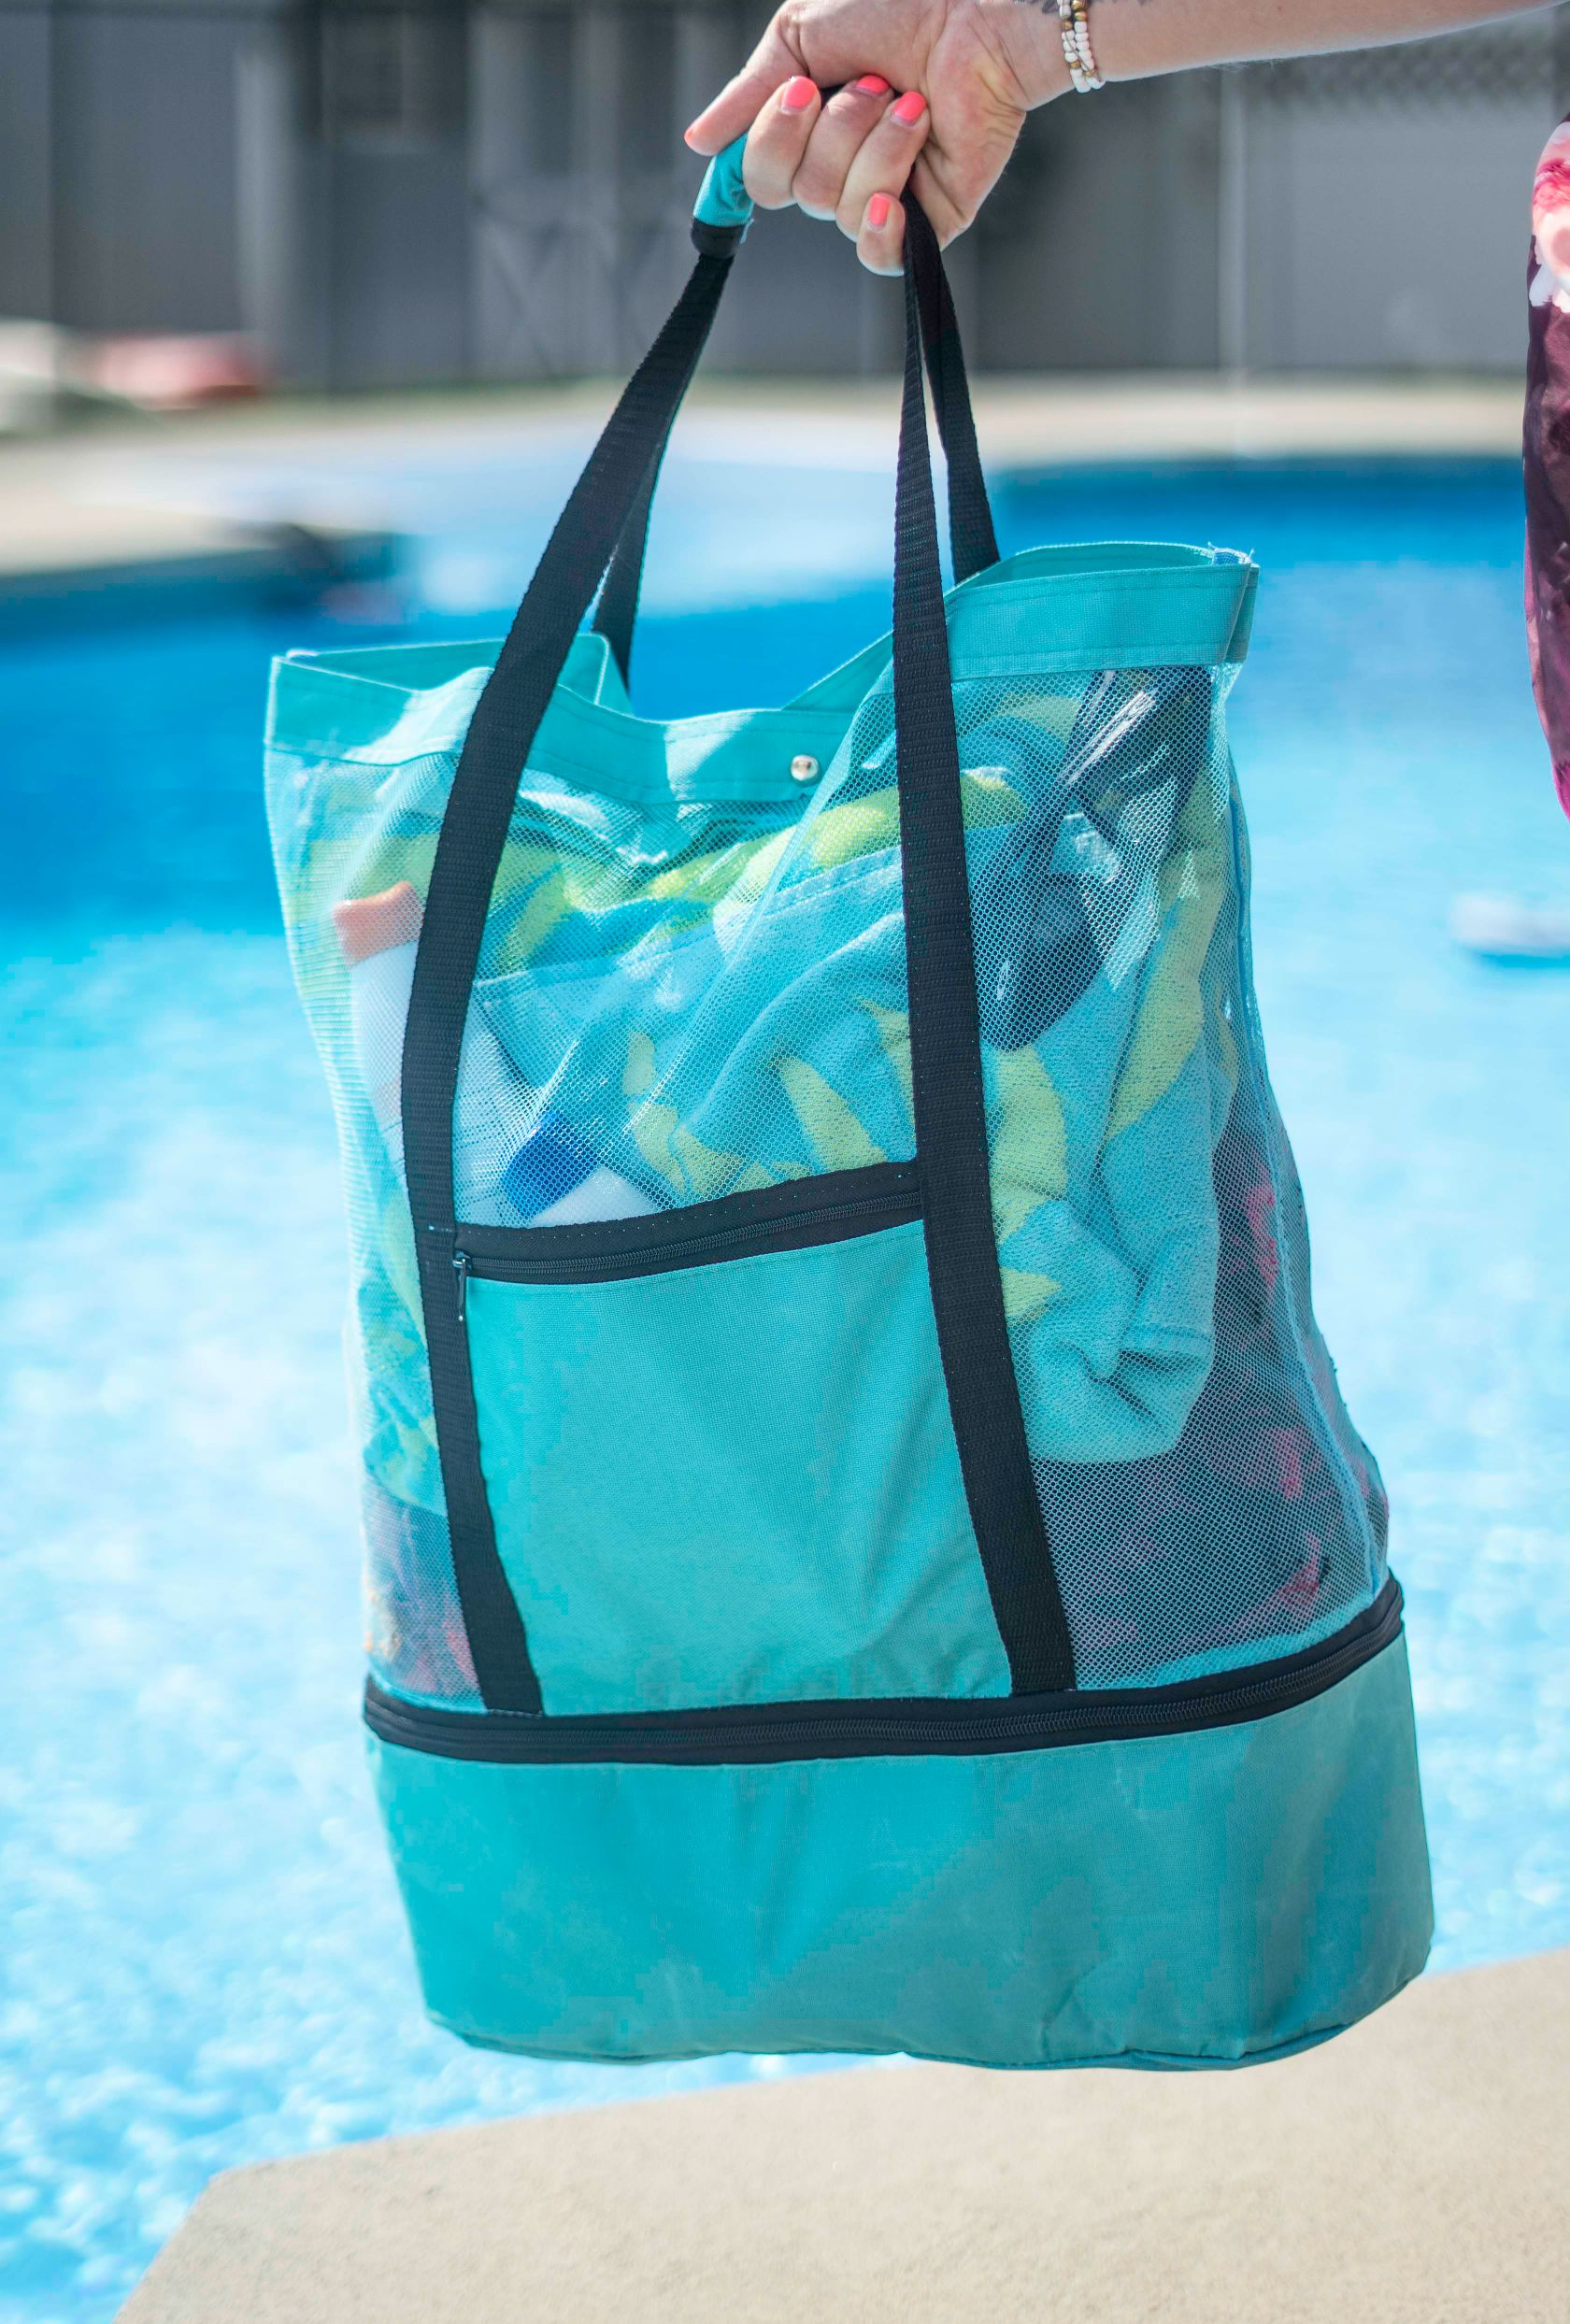 shopify-Insulated Cooler Picnic Beach Tote Bag-4